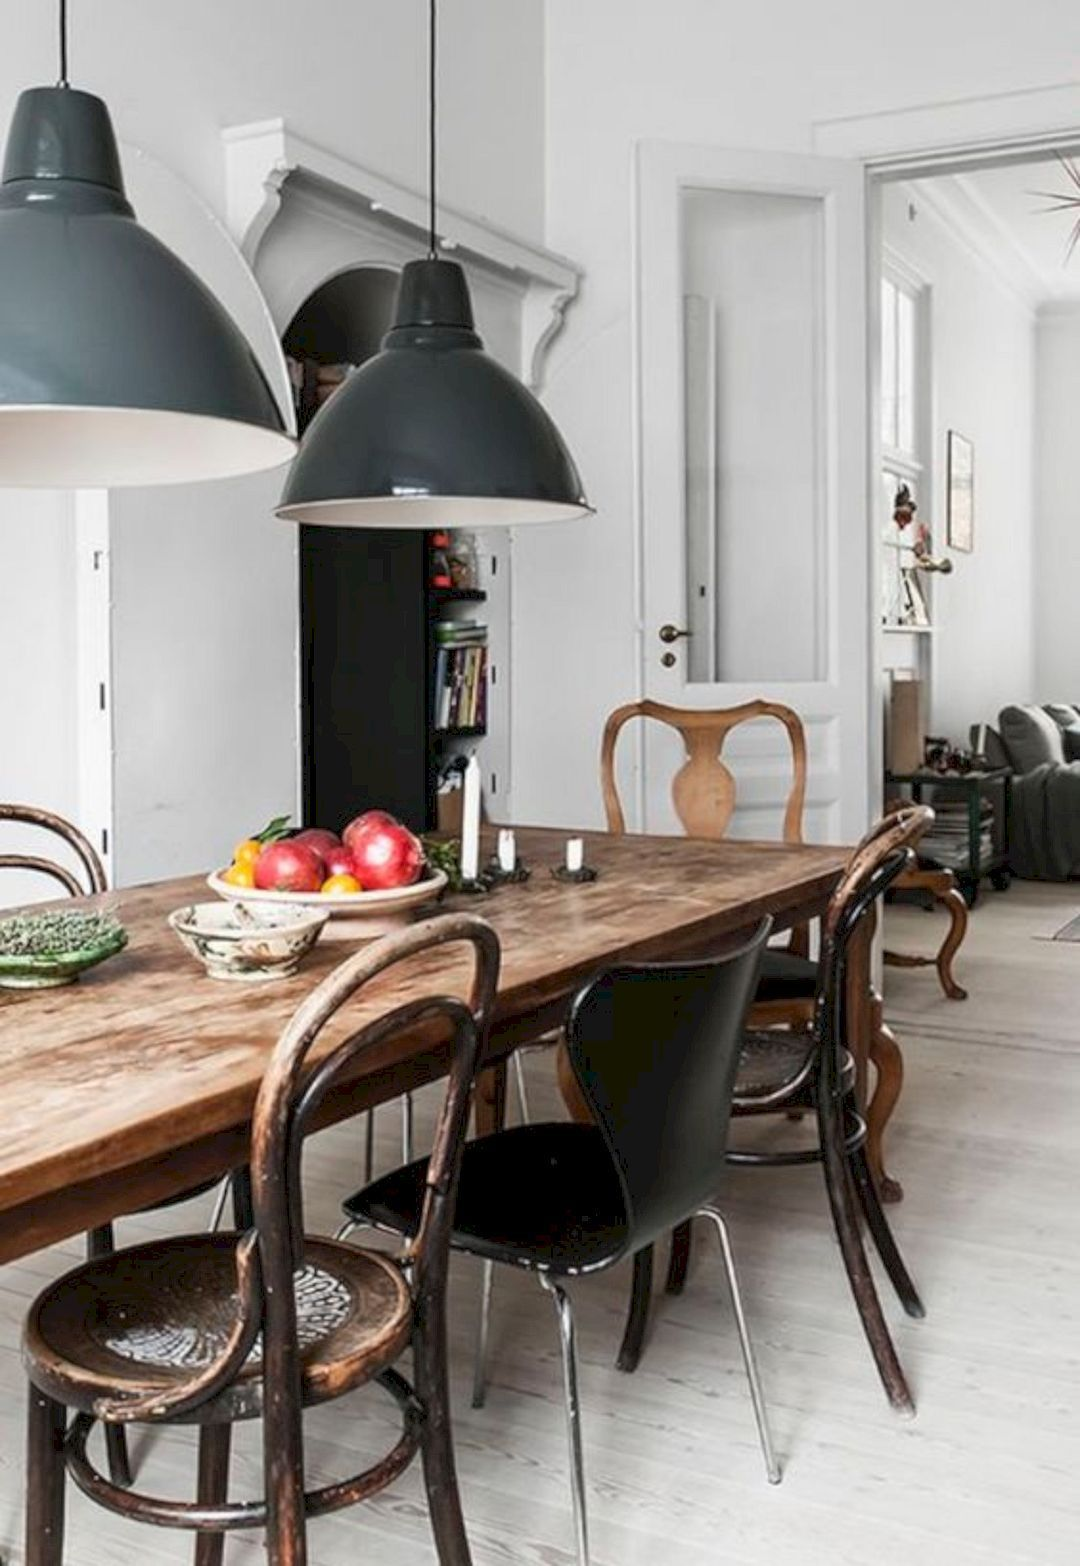 Superbe 16 Decorating Ideas For A Stylish Dining Room  Https://www.futuristarchitecture.com/29743 Stylish Dining Room.html